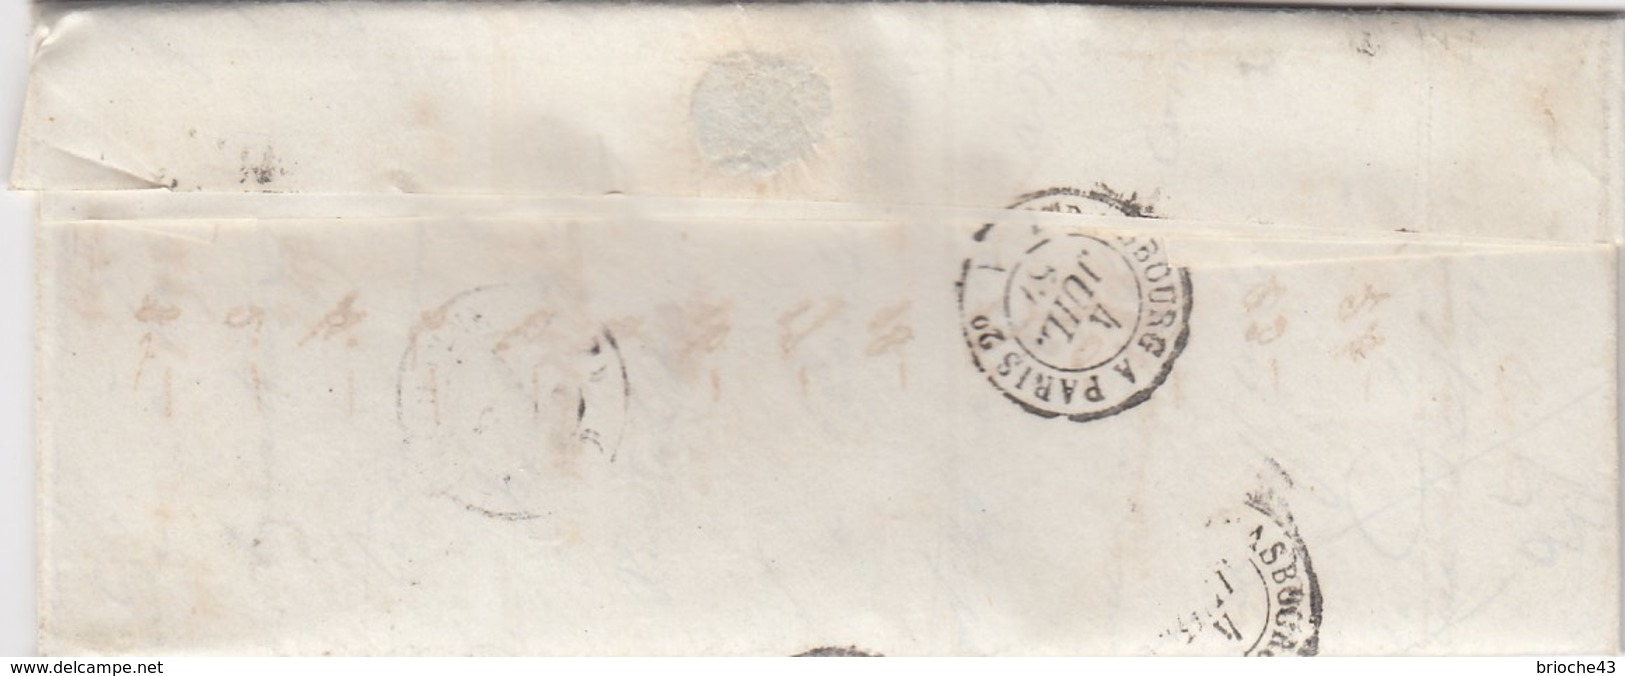 FRANCE - LETTRE CLASSIQUE  / 1 - Postmark Collection (Covers)